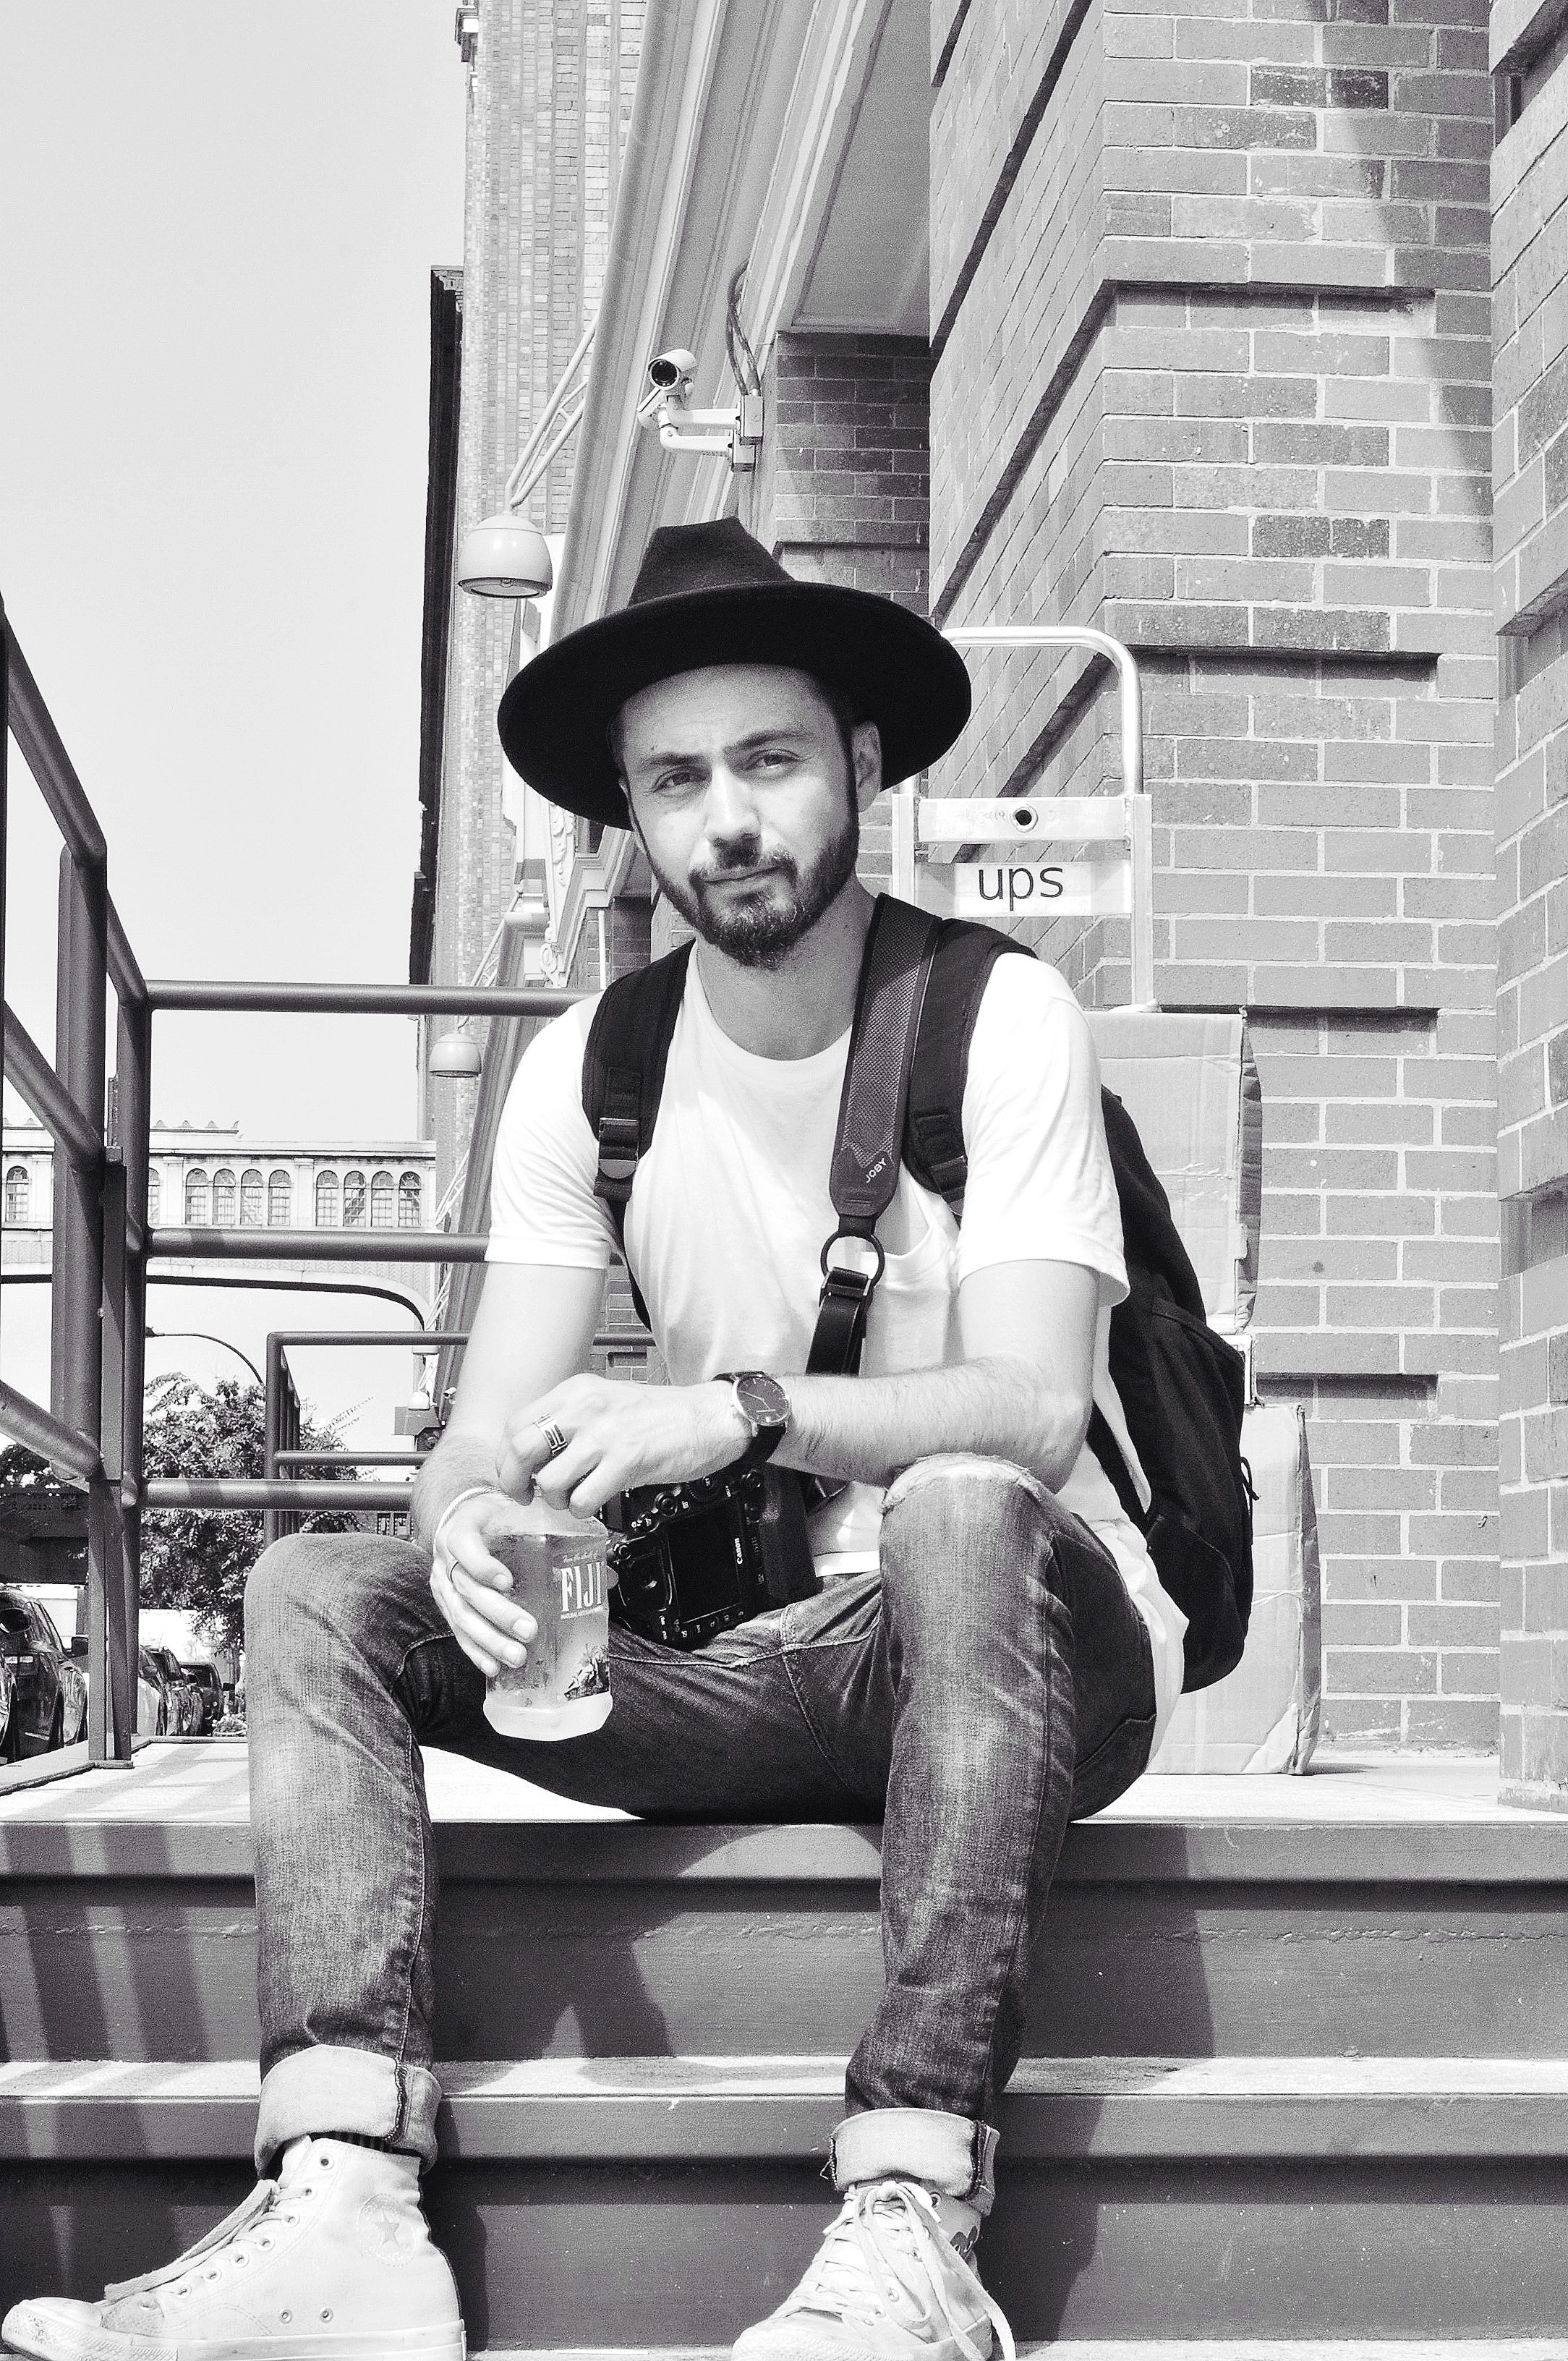 coffeetography_michael_on_abbotkinney_nyfw_octber_2014